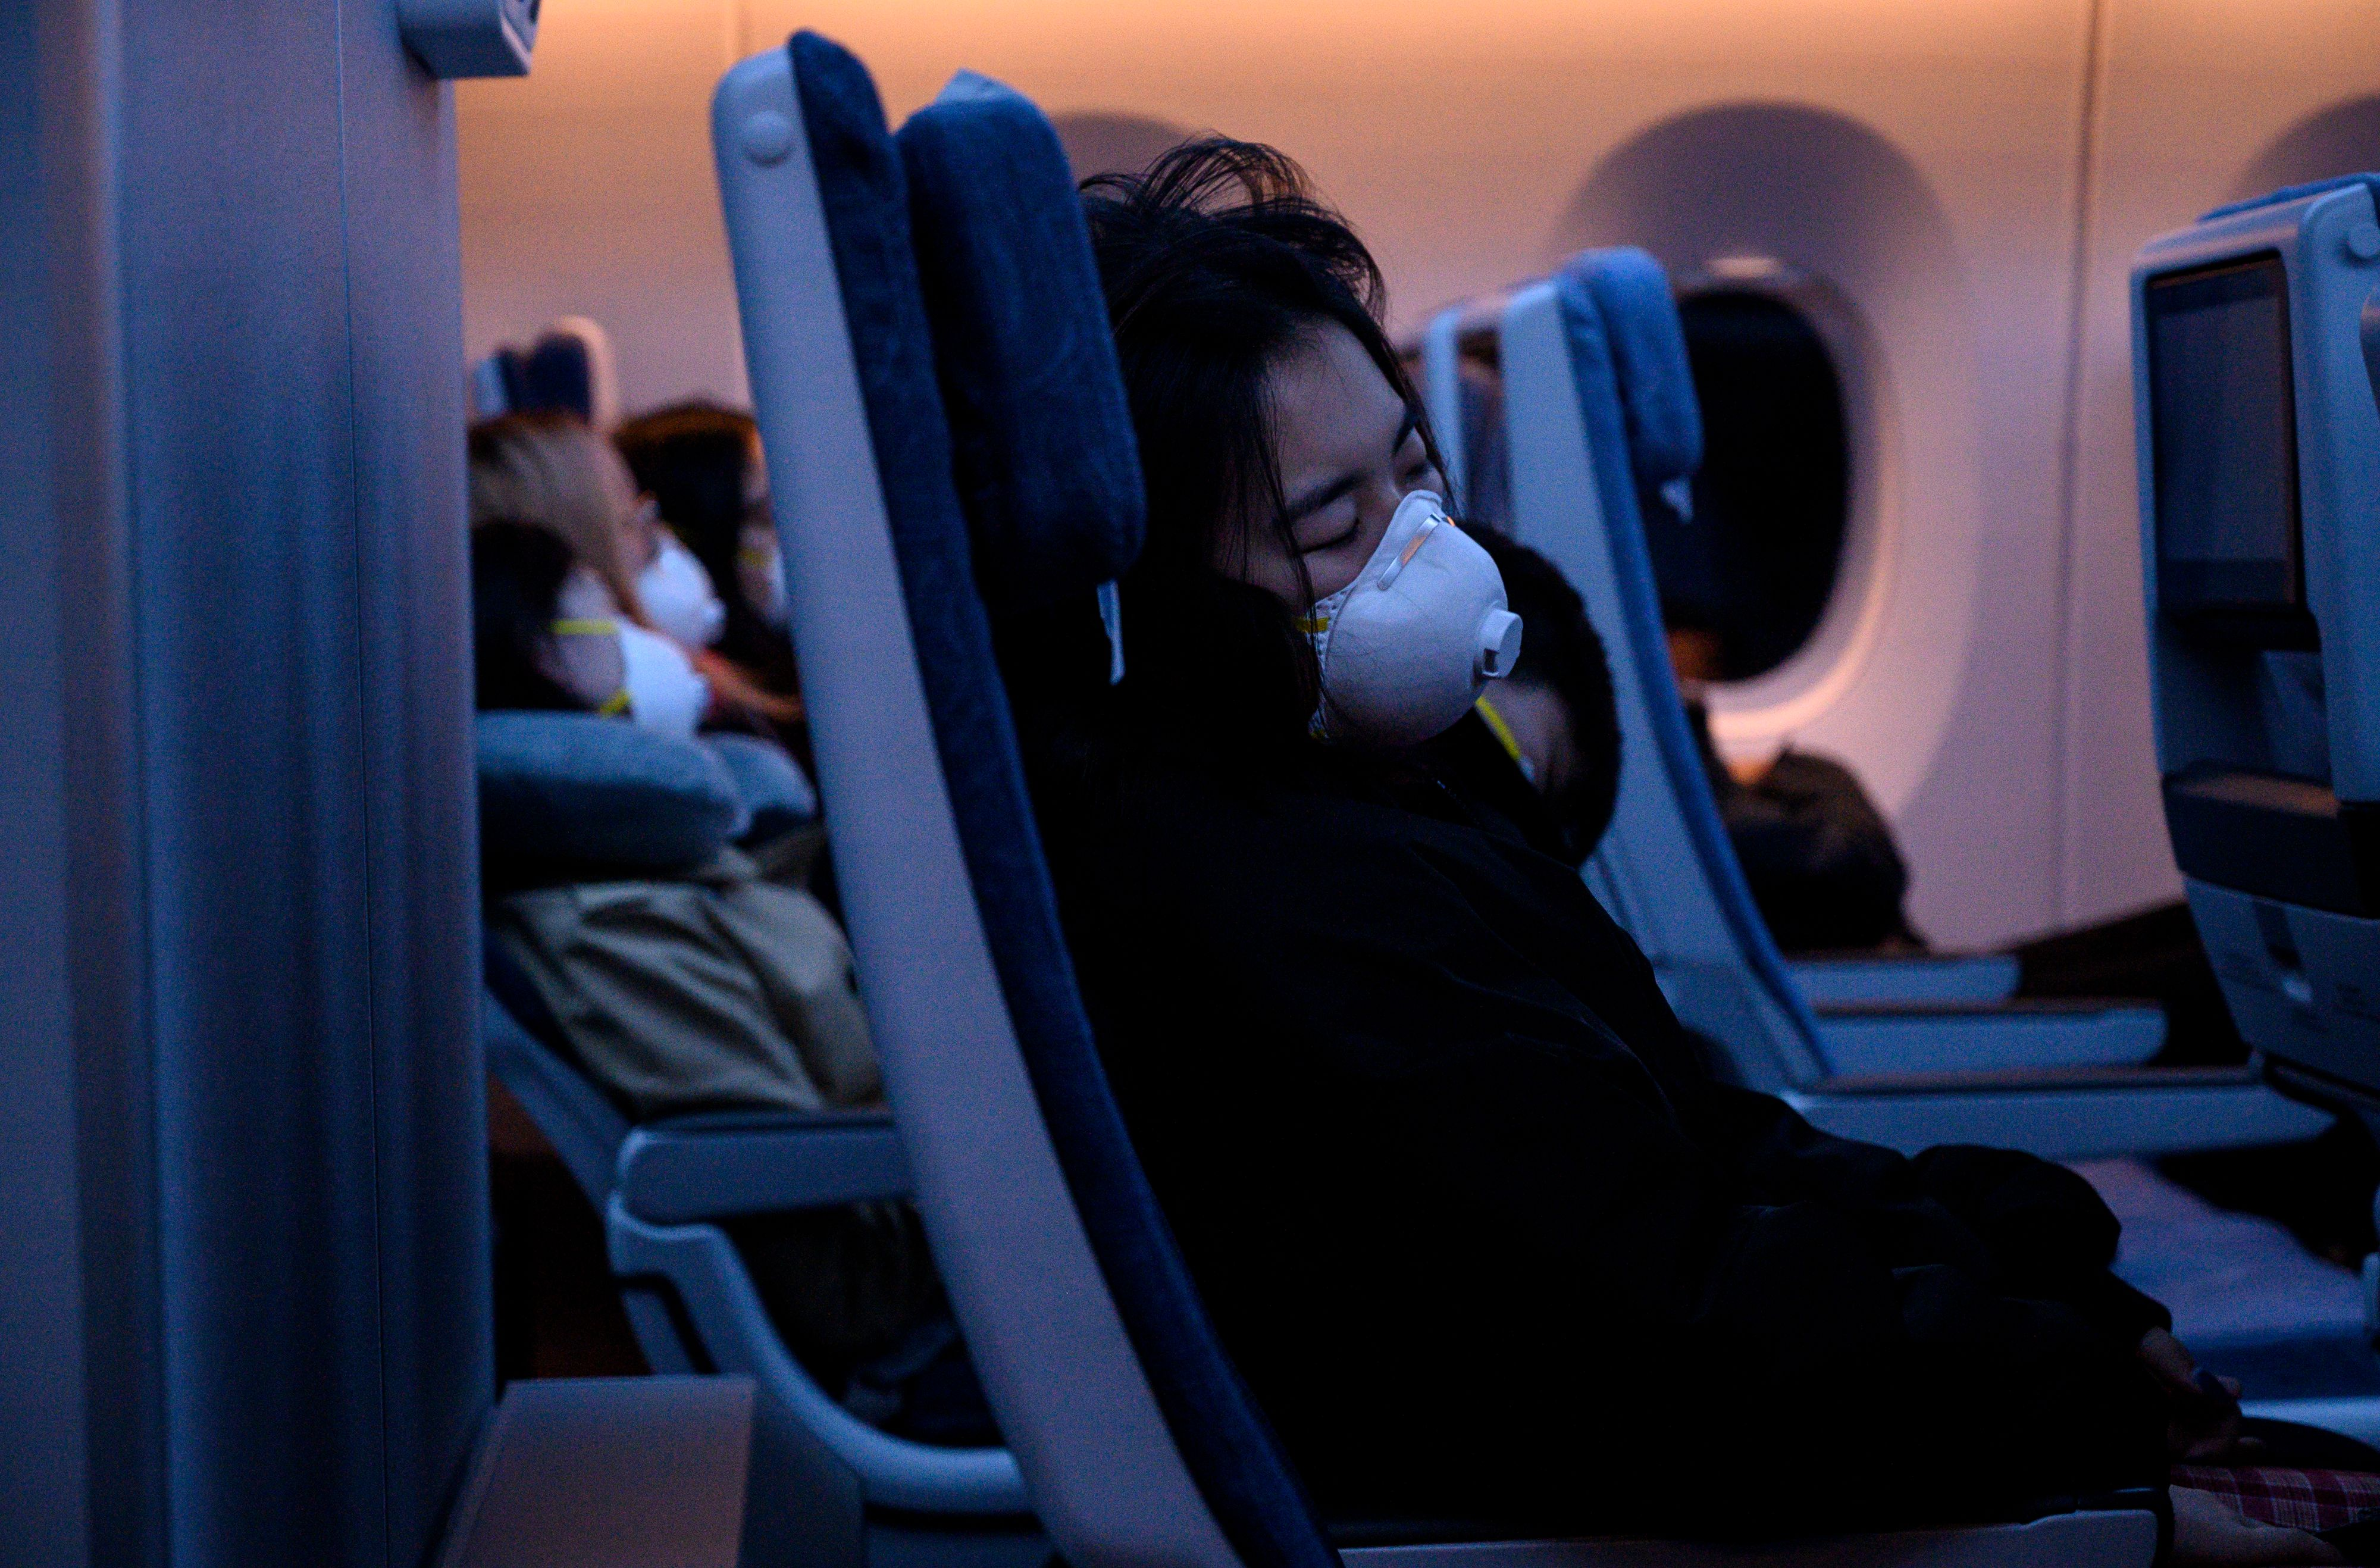 Passengers wearing protective face masks sleep on their flight to Shanghai on February 4, 2020. (Photo by NOEL CELIS/AFP via Getty Images)